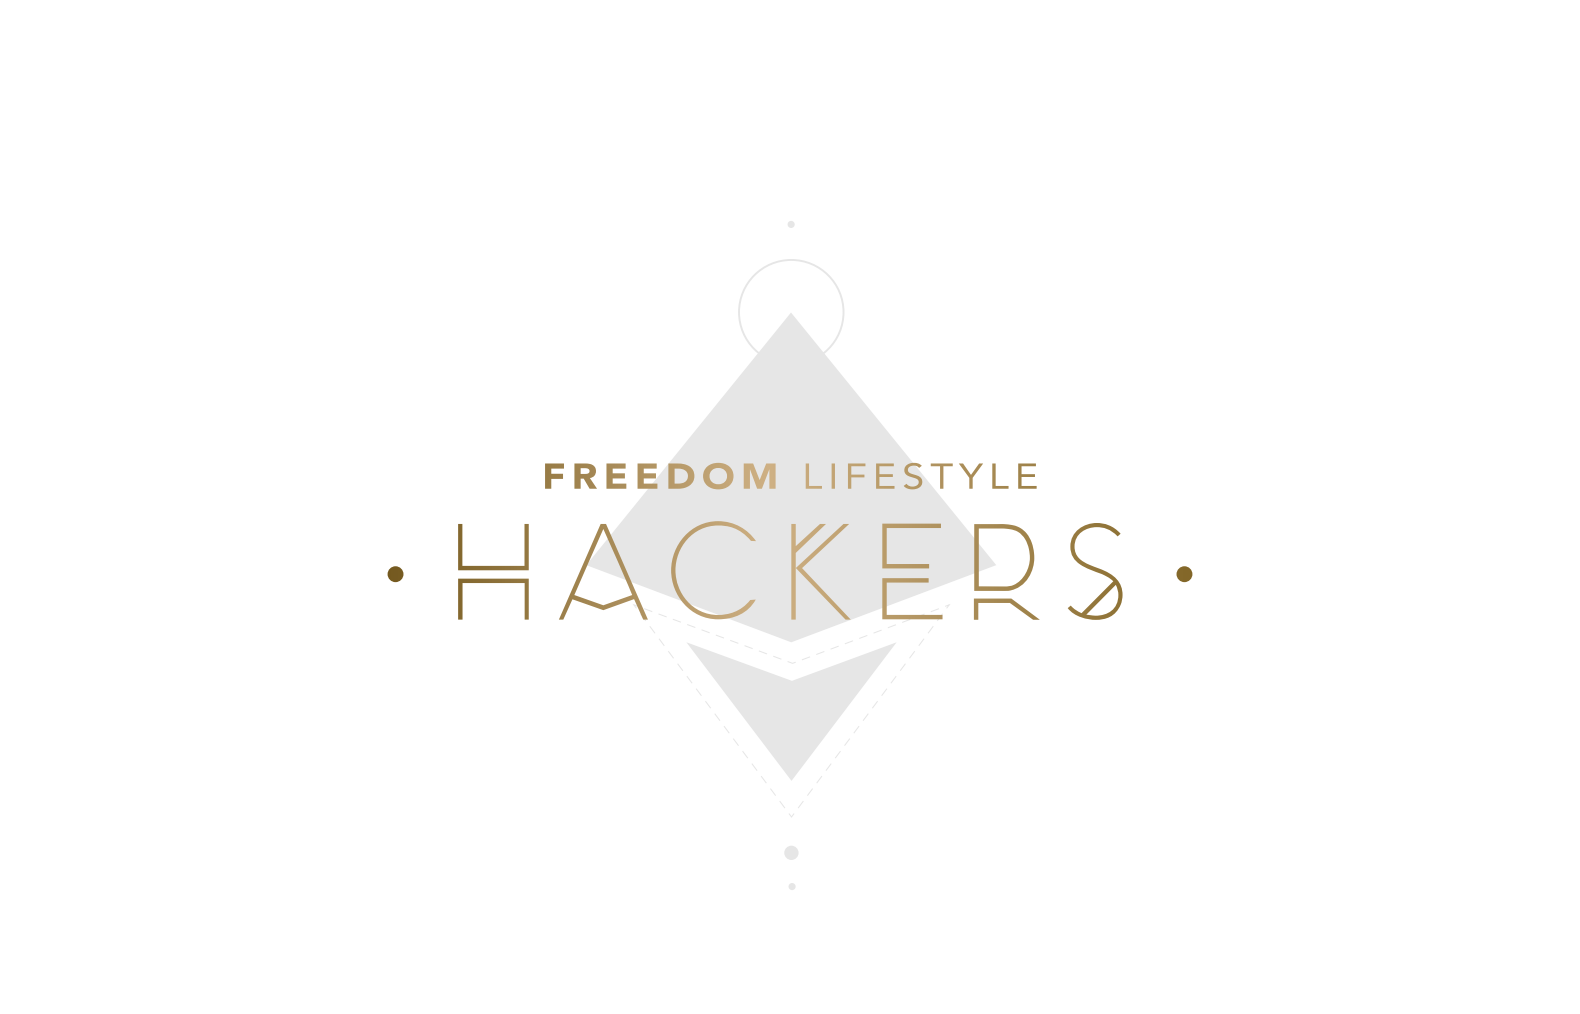 Freedom+Lifestyle+Hackers+-+KH+Creative.png